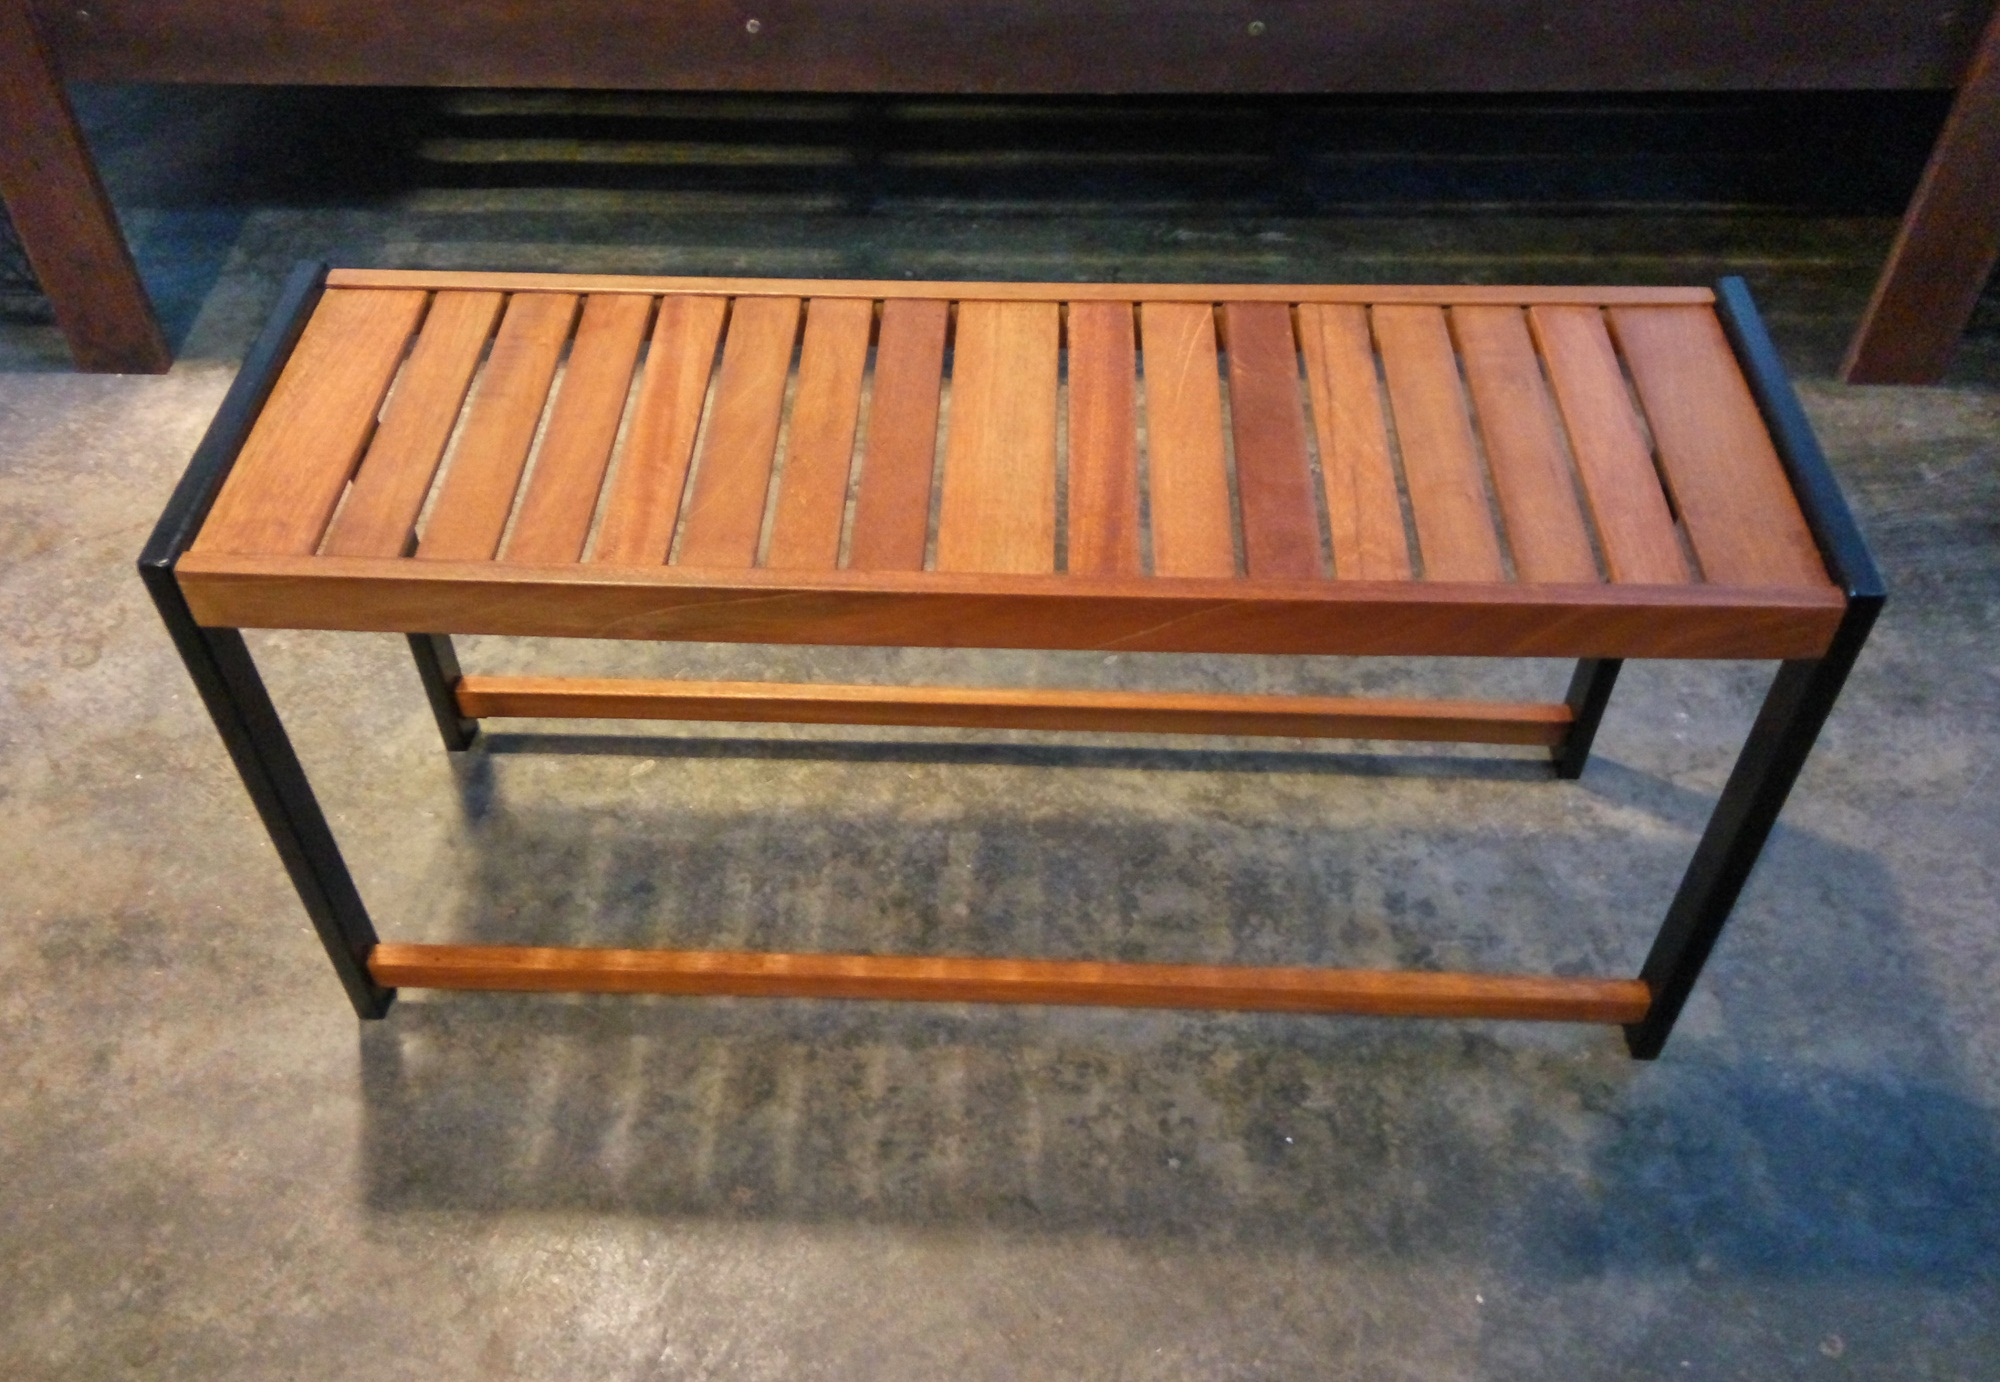 Crbogercom Wooden Bench Sale Used 4 6 Seater